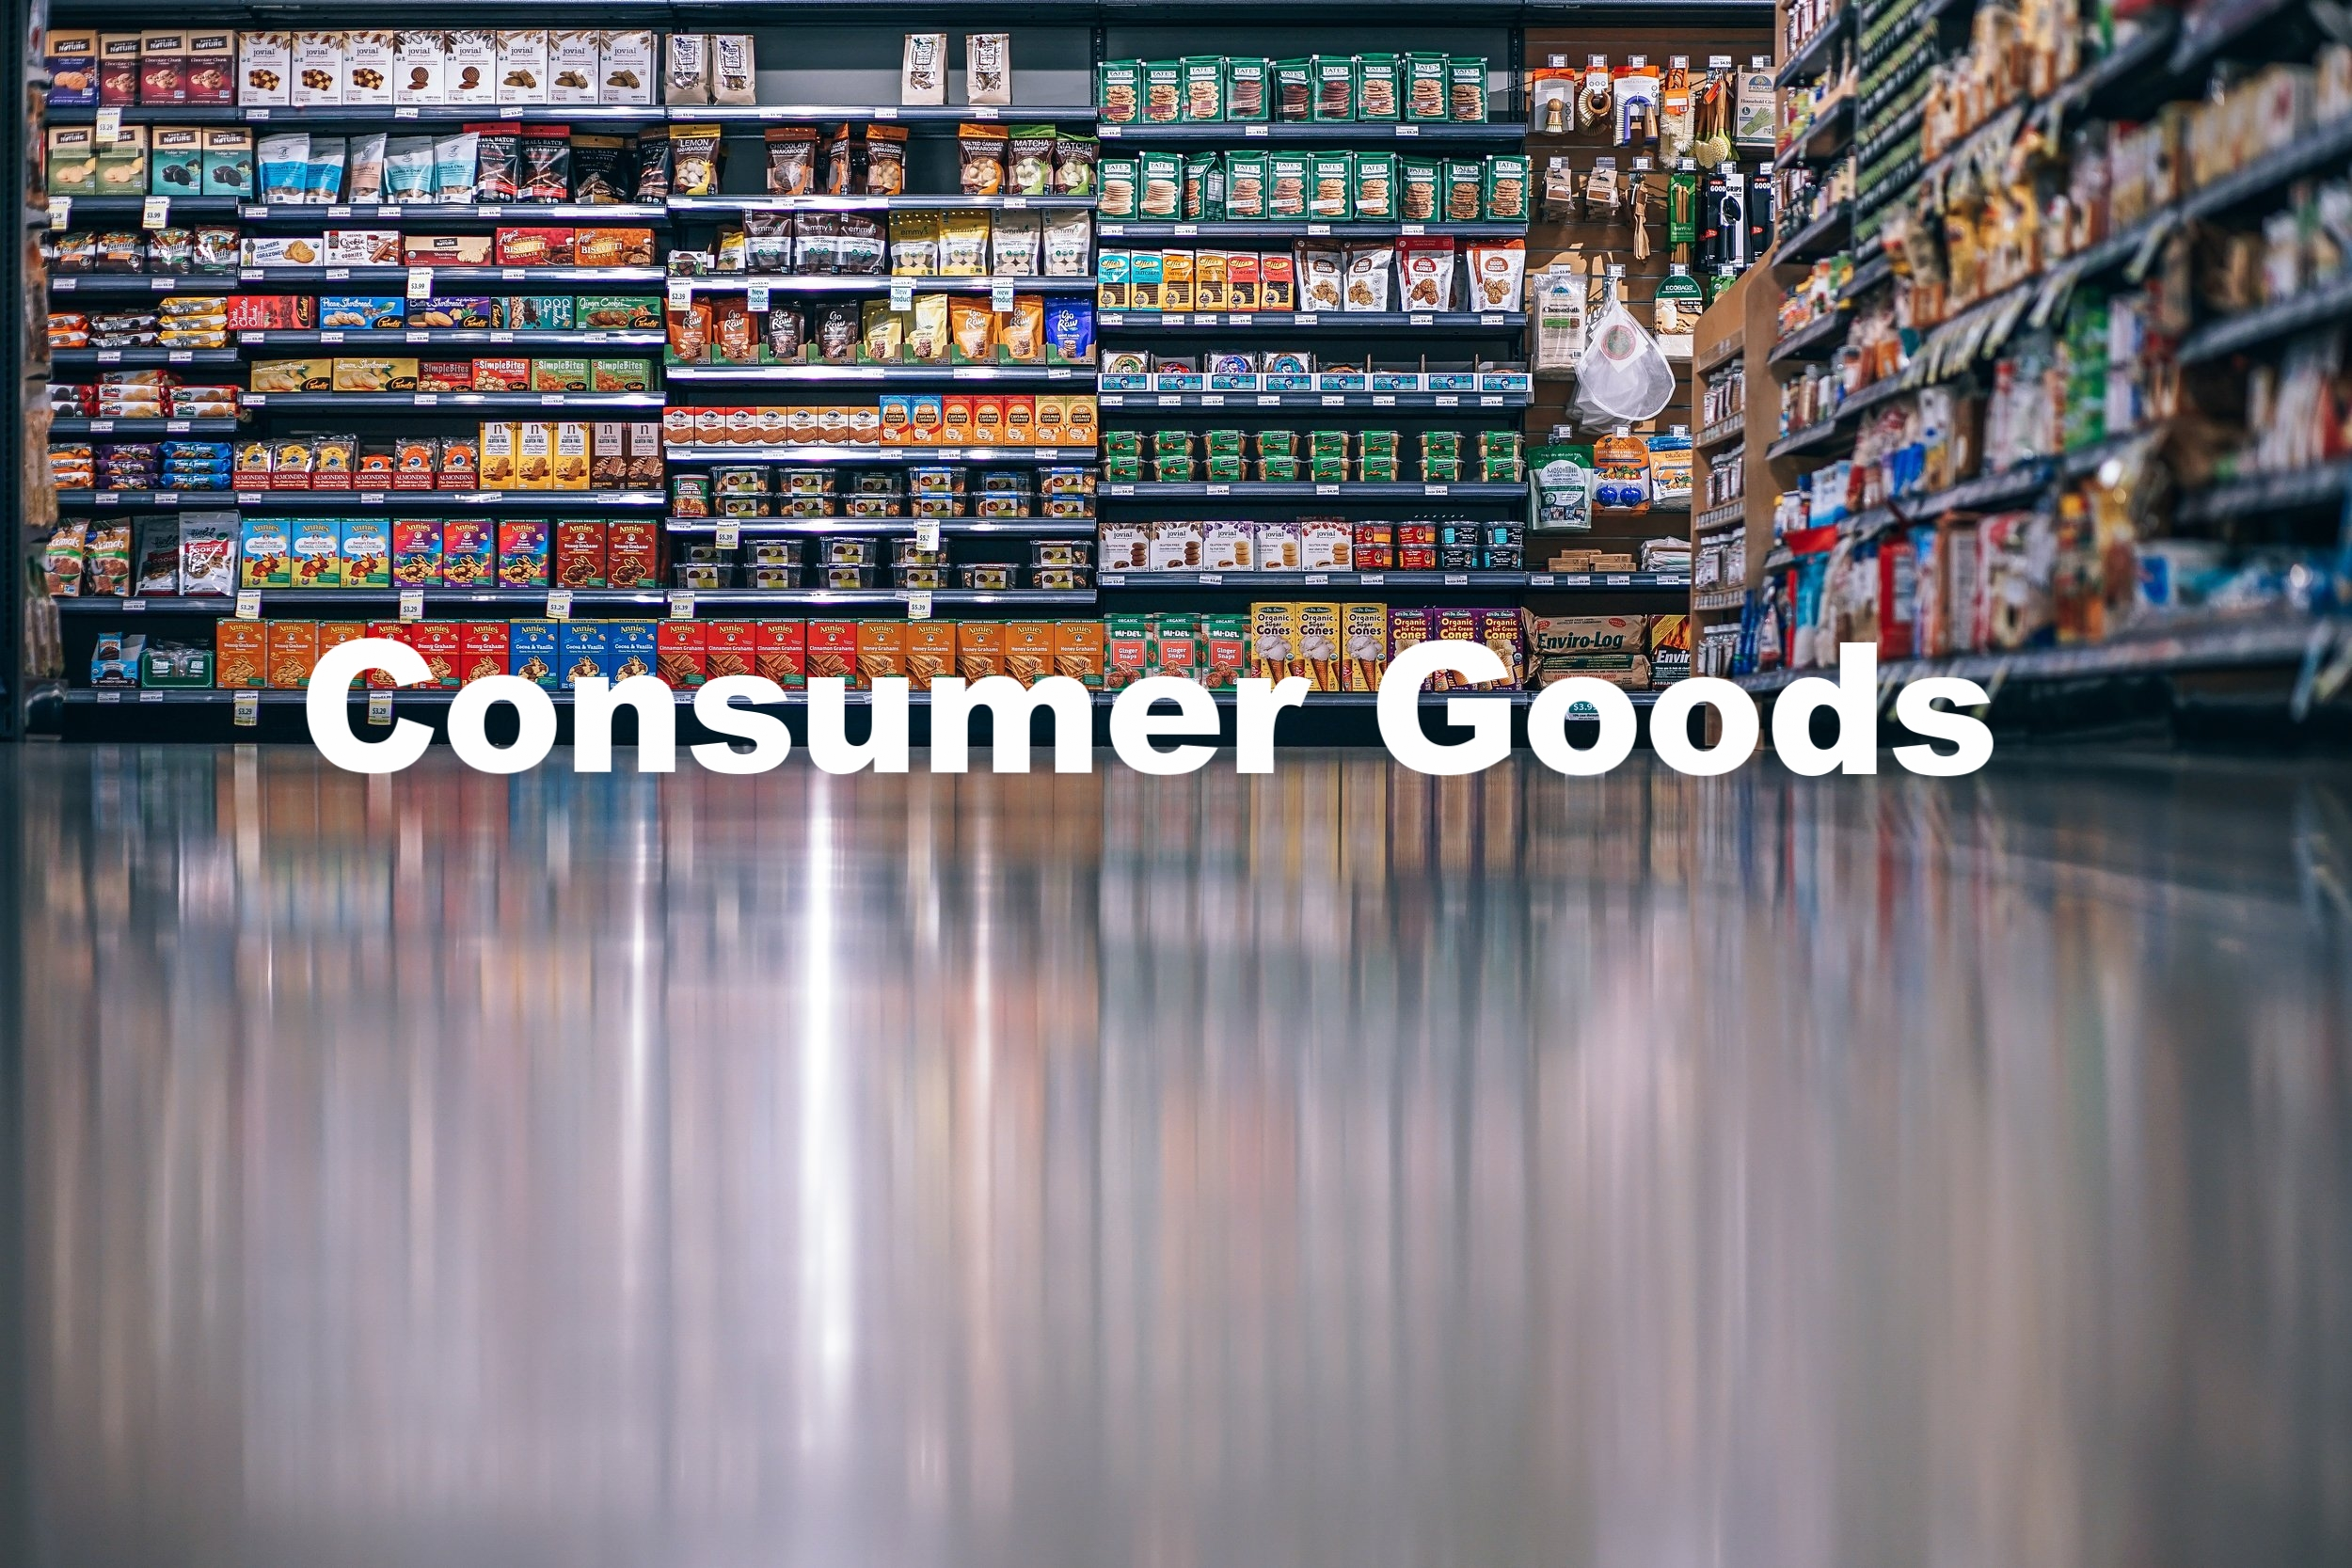 From food and beverage to household products to durable goods, we serve a broad range of consumer product manufacturers with strategic, organizational, financial and operational guidance. Our expertise includes corporate strategy to identify growth opportunities, operational advice to optimize the overall supply chain, and assistance with organization structure, processes and overall company and functional performance.